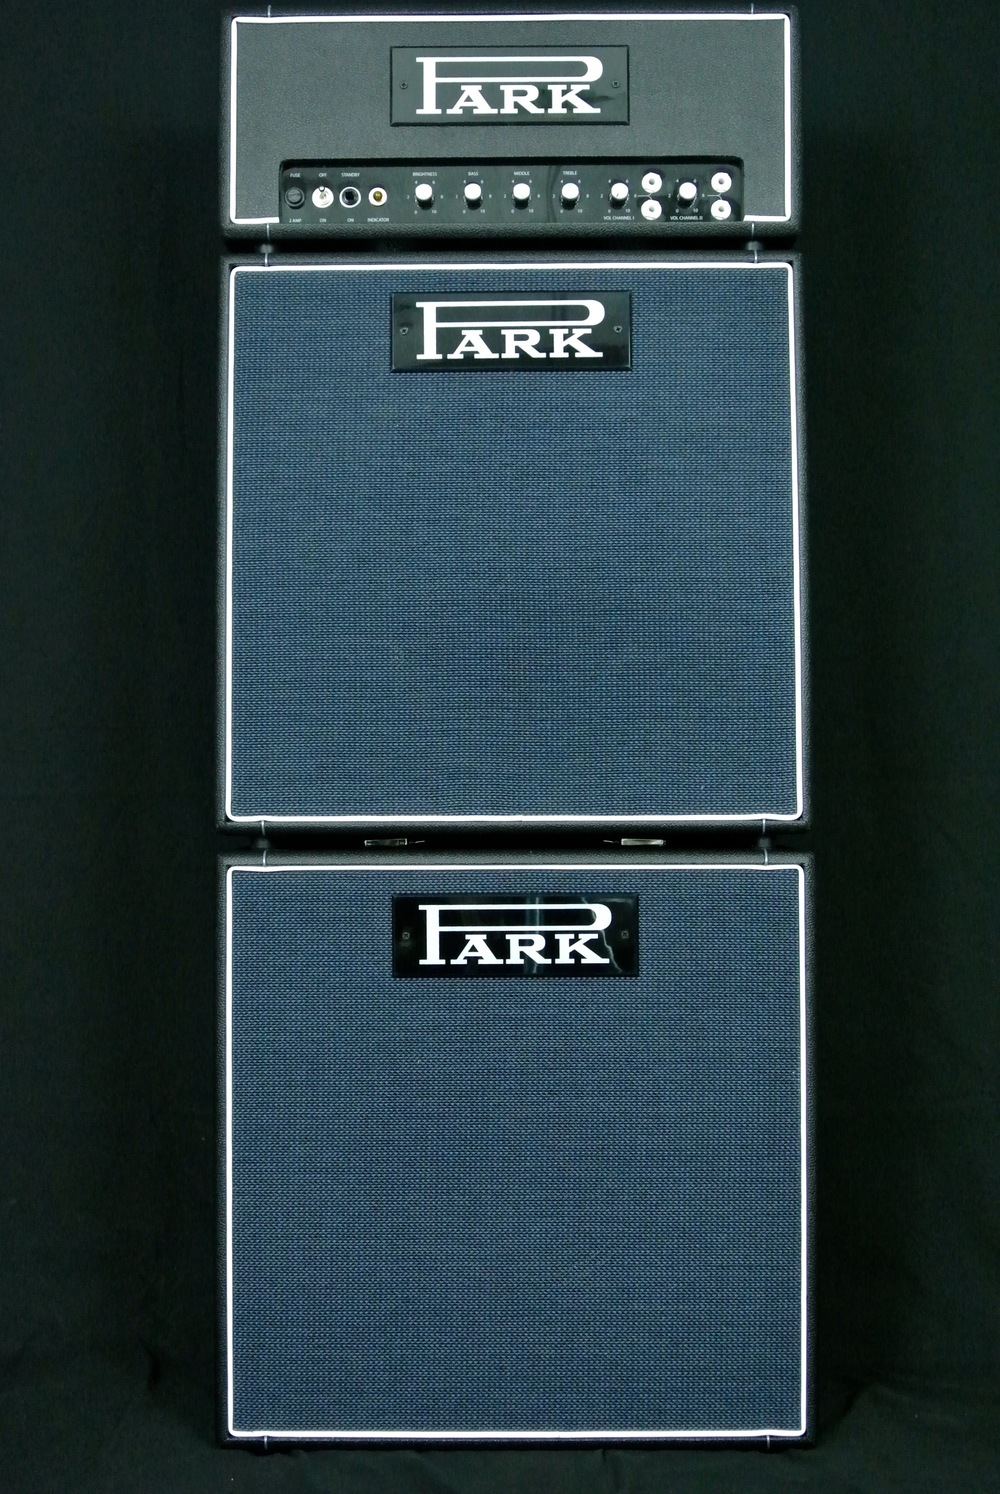 "Park Little Stack. Park Little Head 18 with PLCT (Park Little Cab Top) and PLCB (Park Little Cab Bottom). Each houses one Celestion G12-65 Creamback M 12"", 16 ohm speaker). Little cabs are 21"" x 21"". The top cab is slightly angled back. The bottom depth is 11"". The top depth is 9.5""."